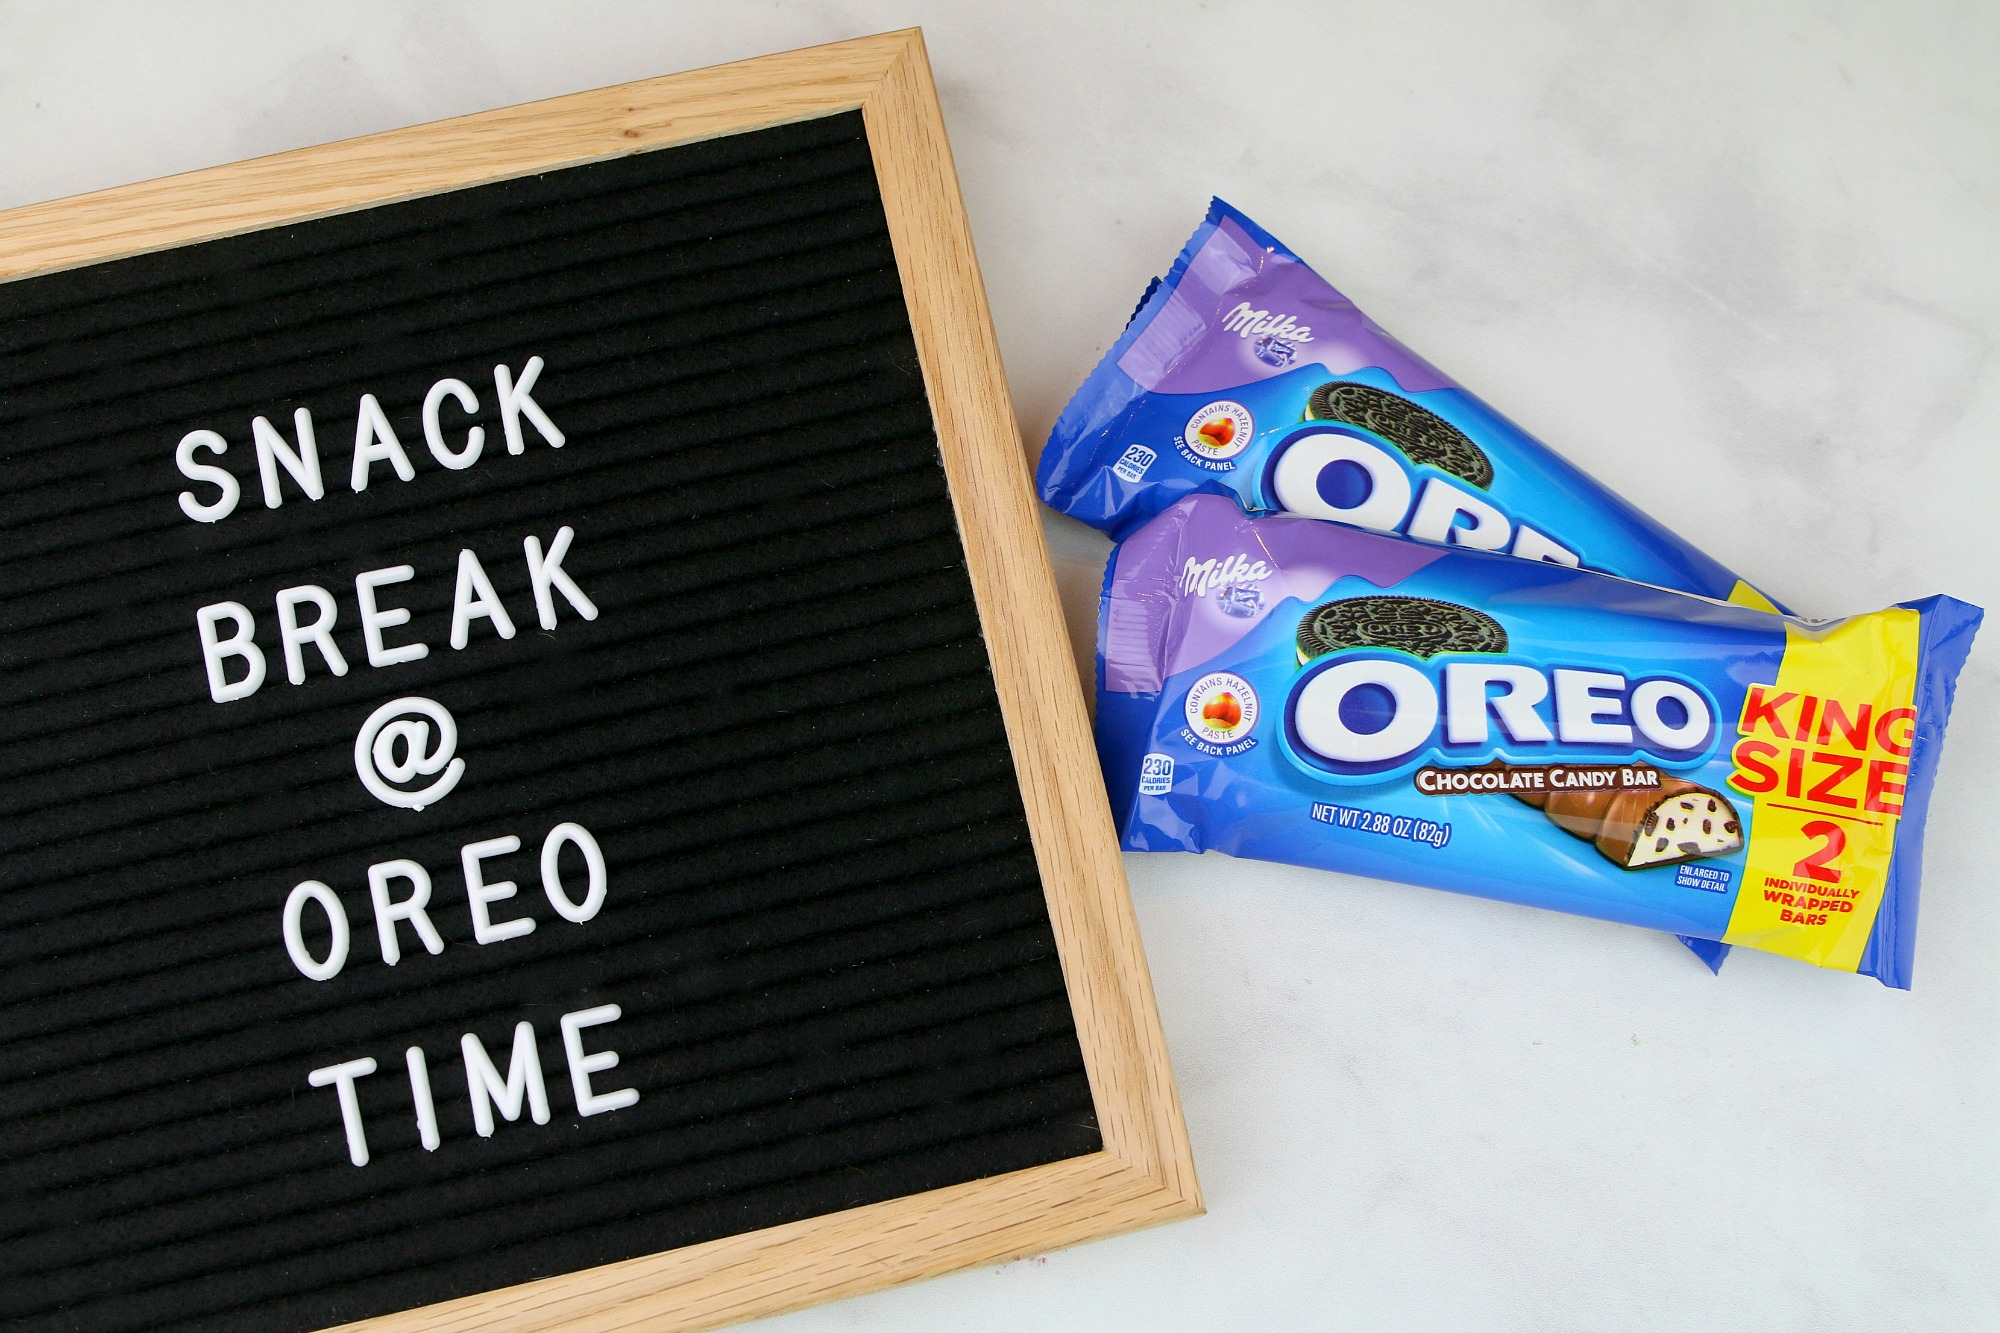 OREO Chocolate Candy Bar - Snack Time